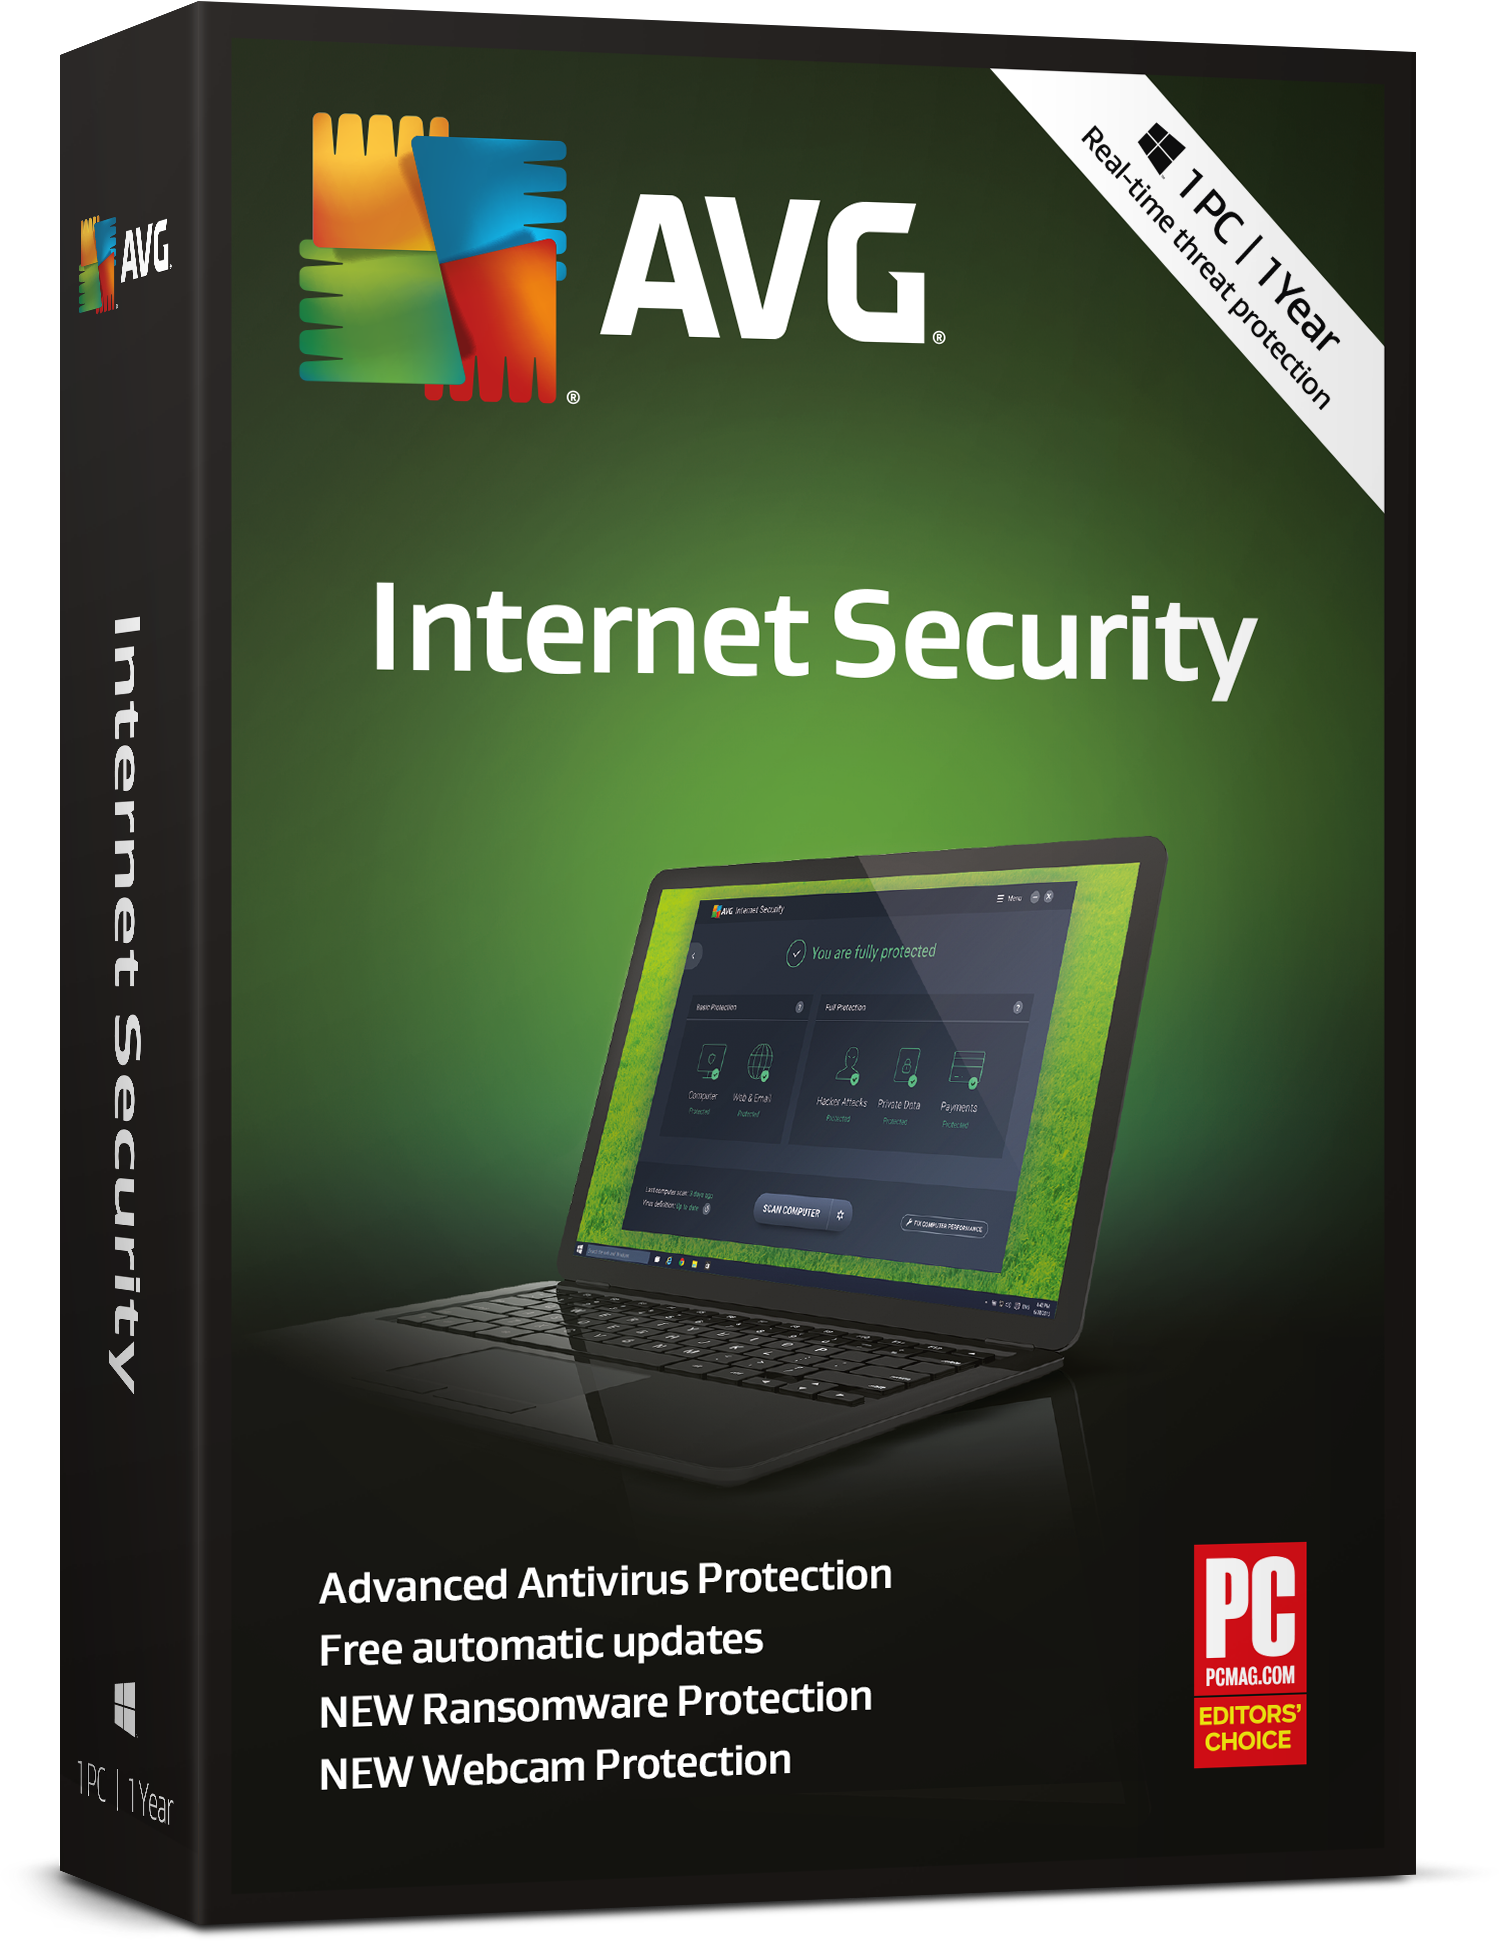 AVG Internet Security 3 Years License